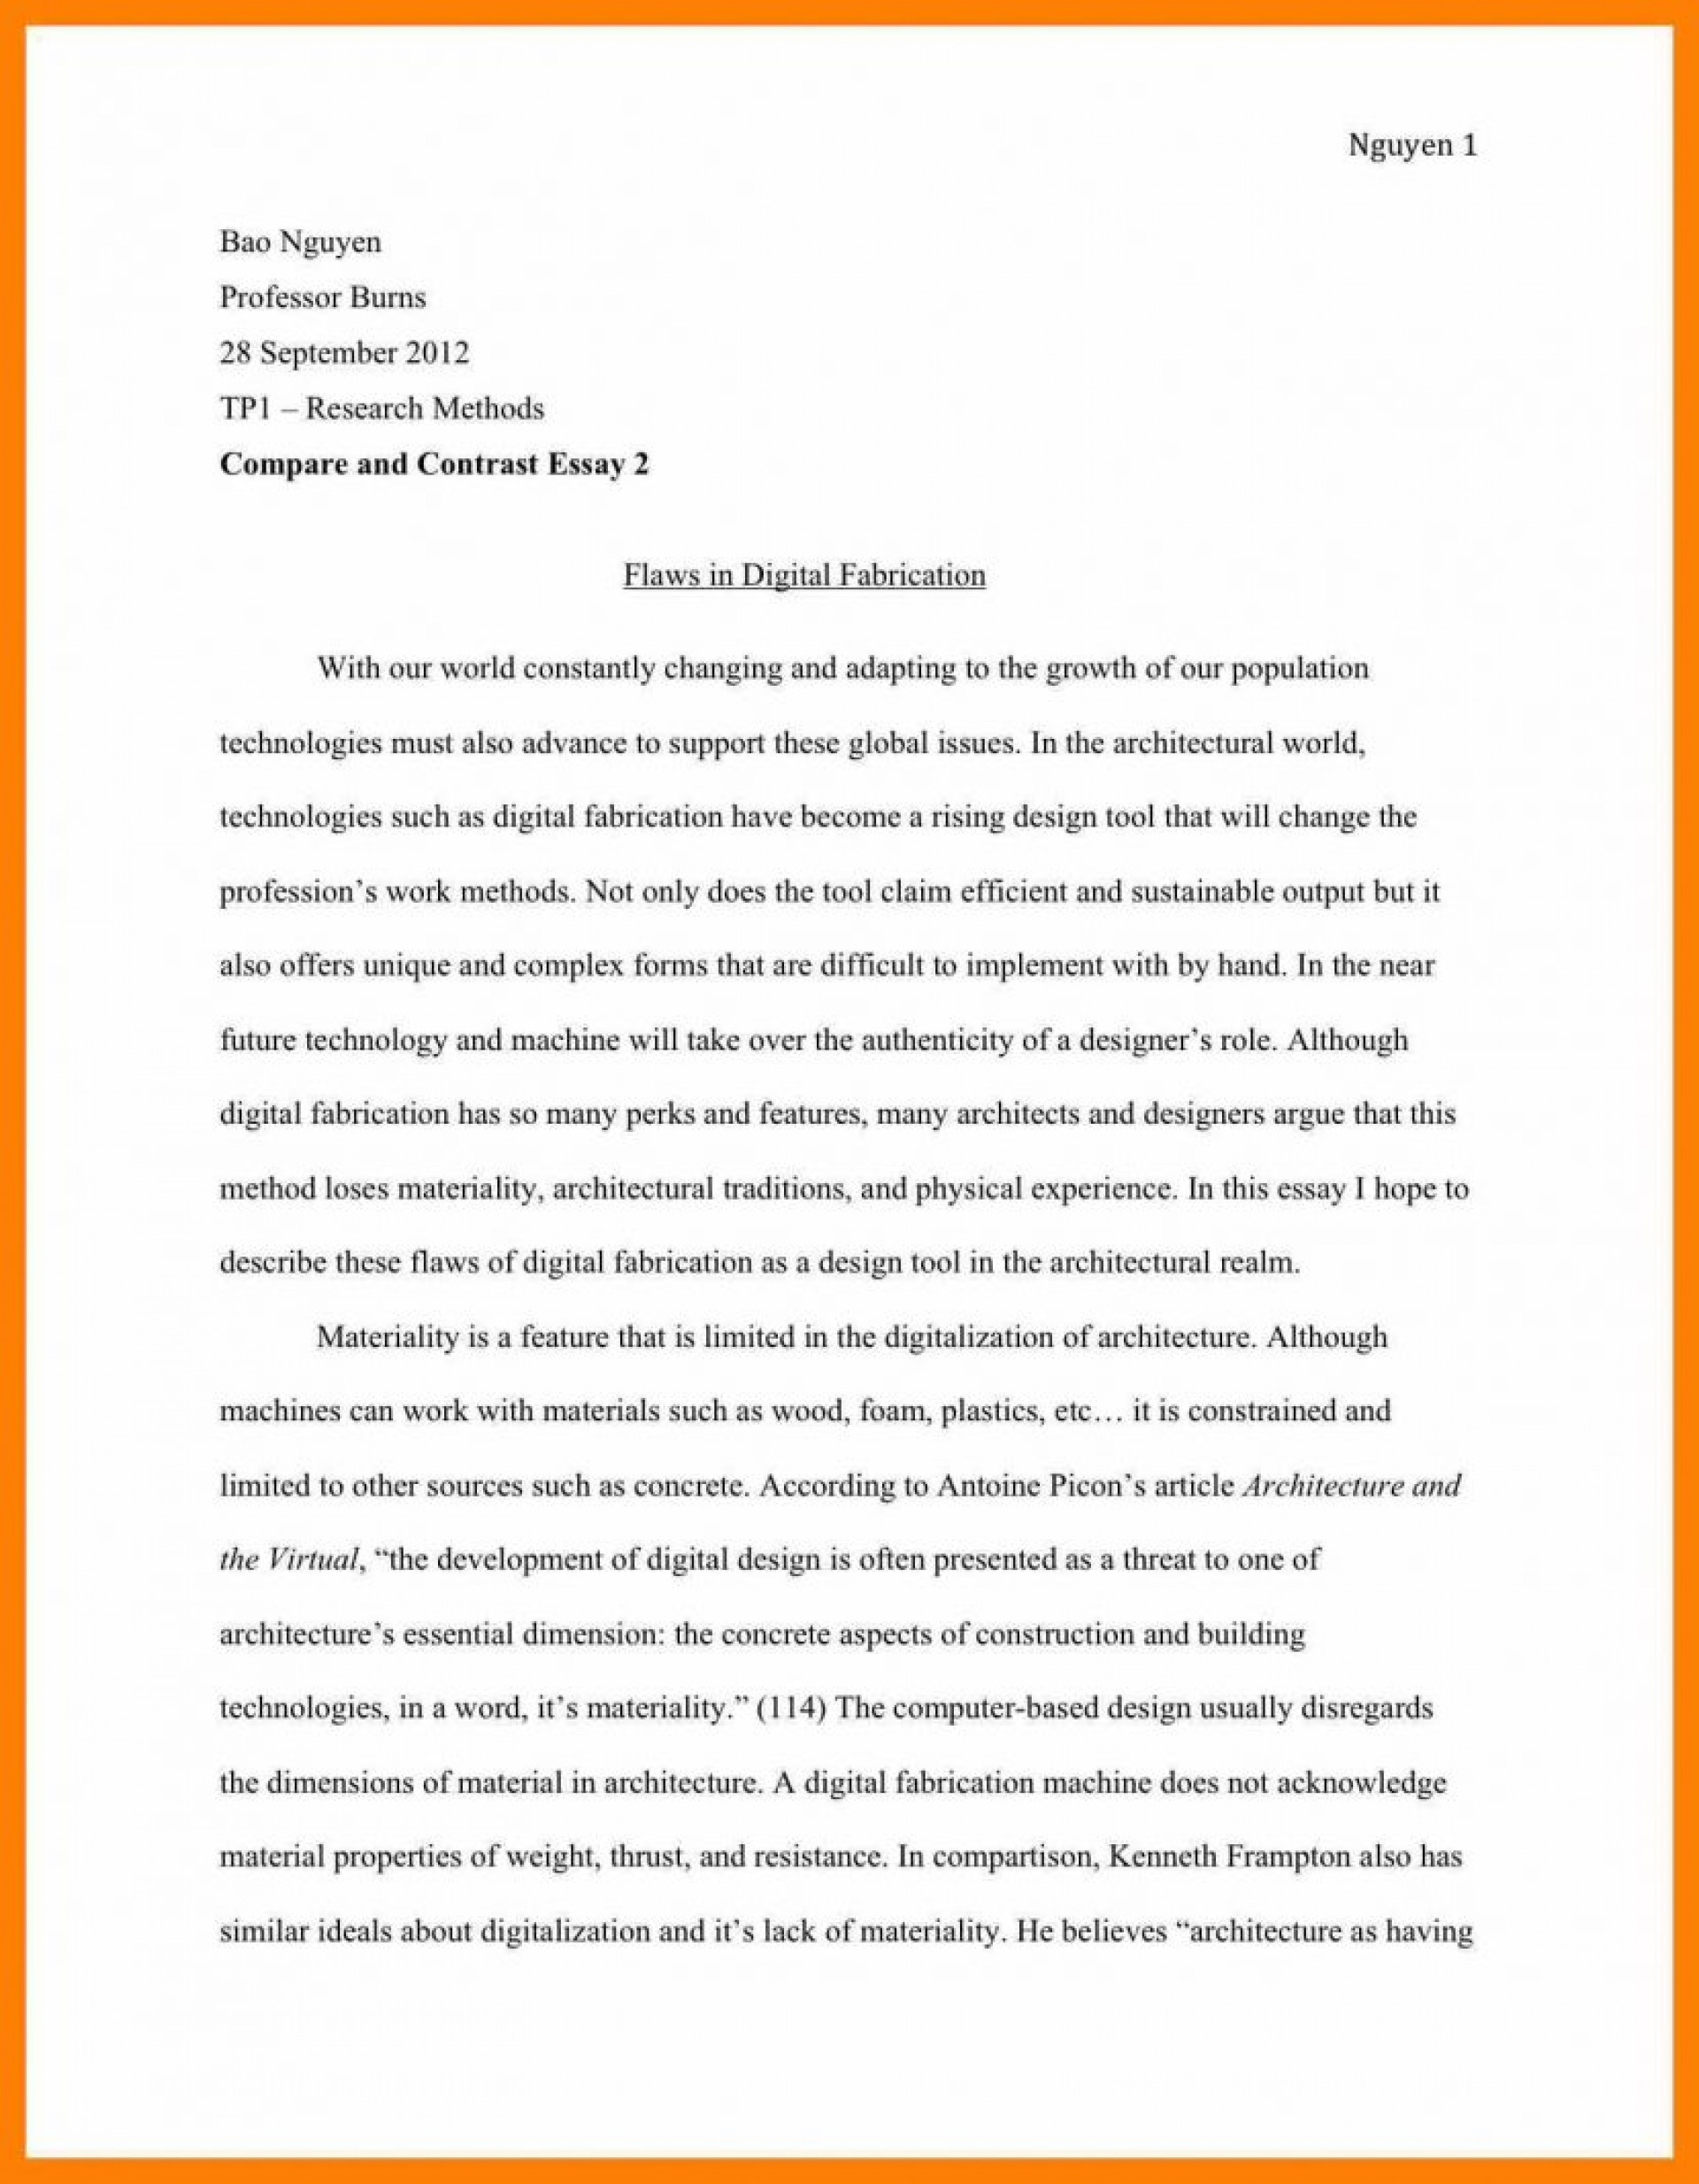 Value Of Education College Essay  Literature Essays also Best College Essays How To Start Writing A Biography Essay  Applydocoumentco High School And College Essay